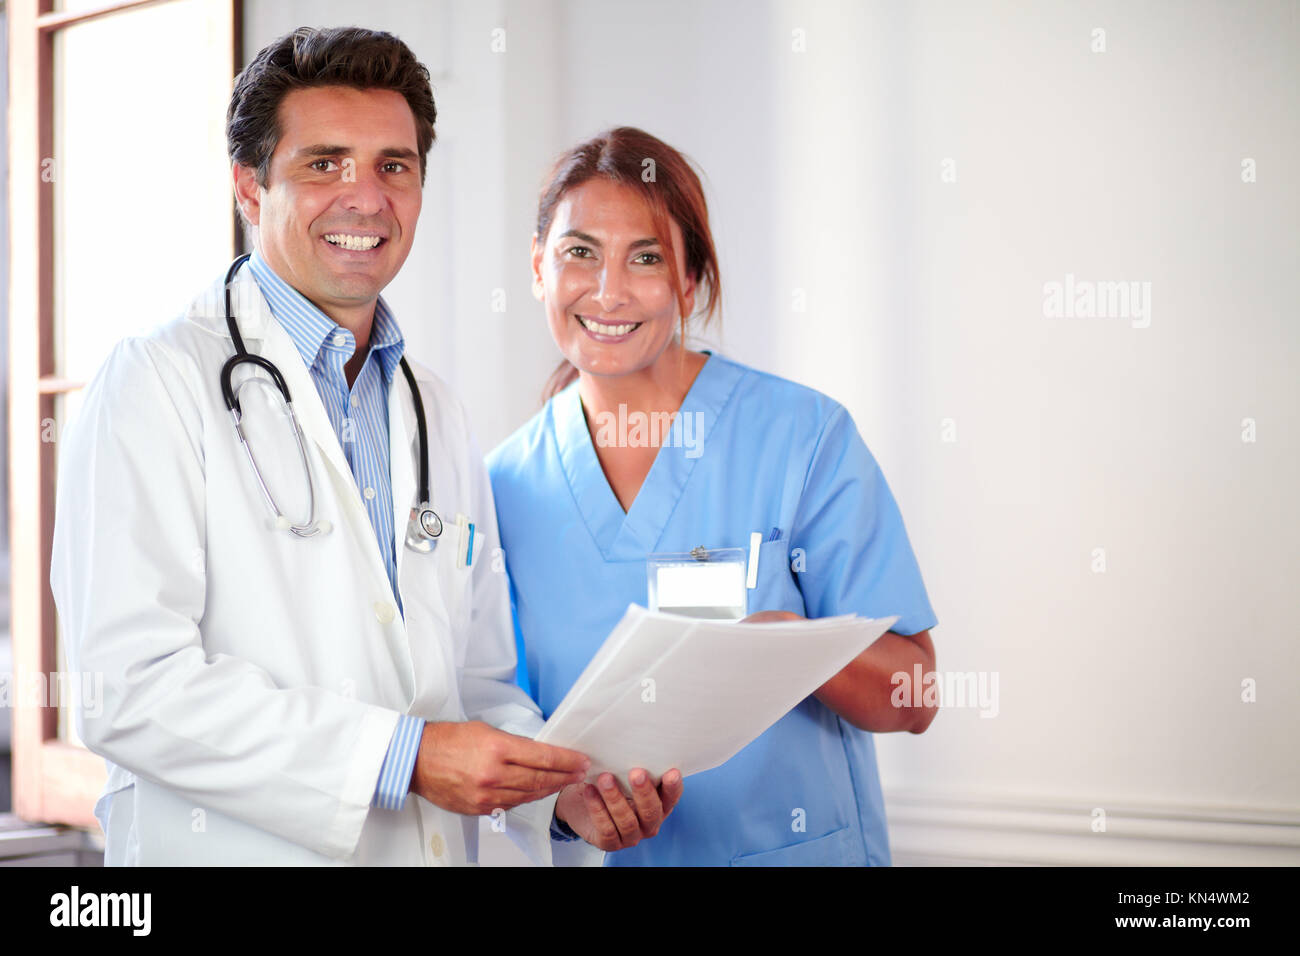 Portrait of a medical colleagues looking and smiling at you while holding documents - copyspace. - Stock Image